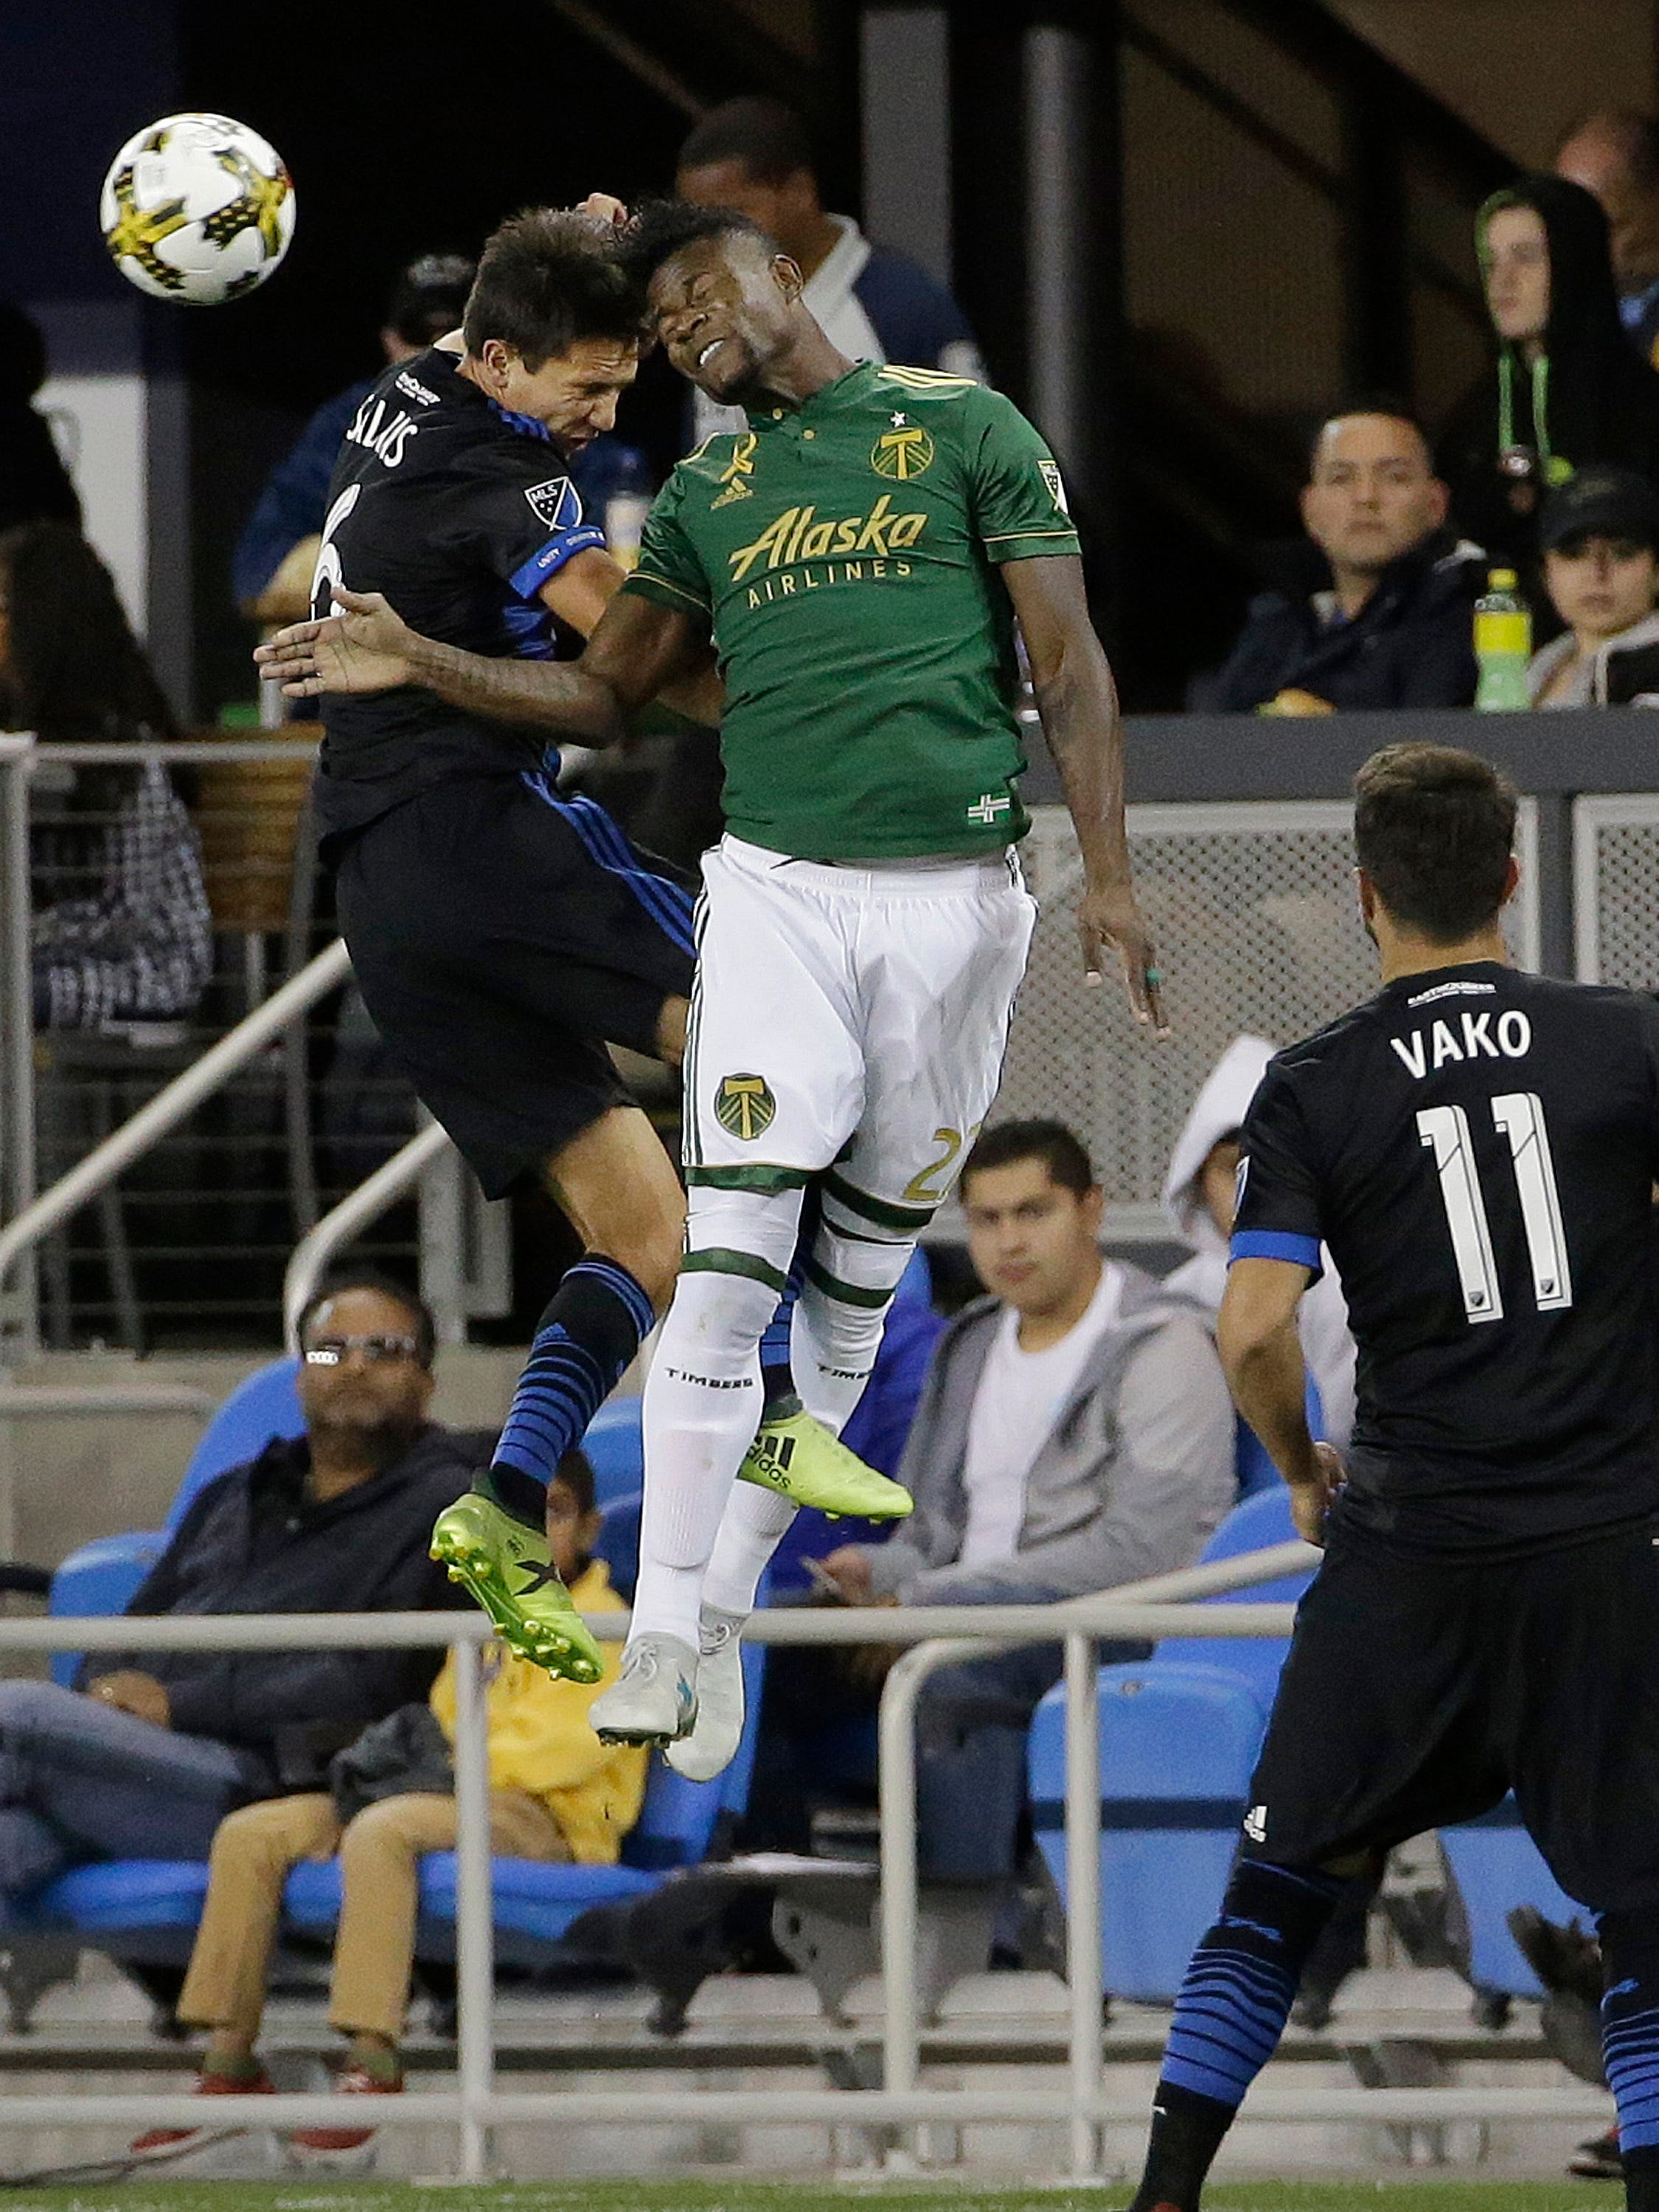 Earthquakes keep playoff hopes alive, beat Timbers 2-1